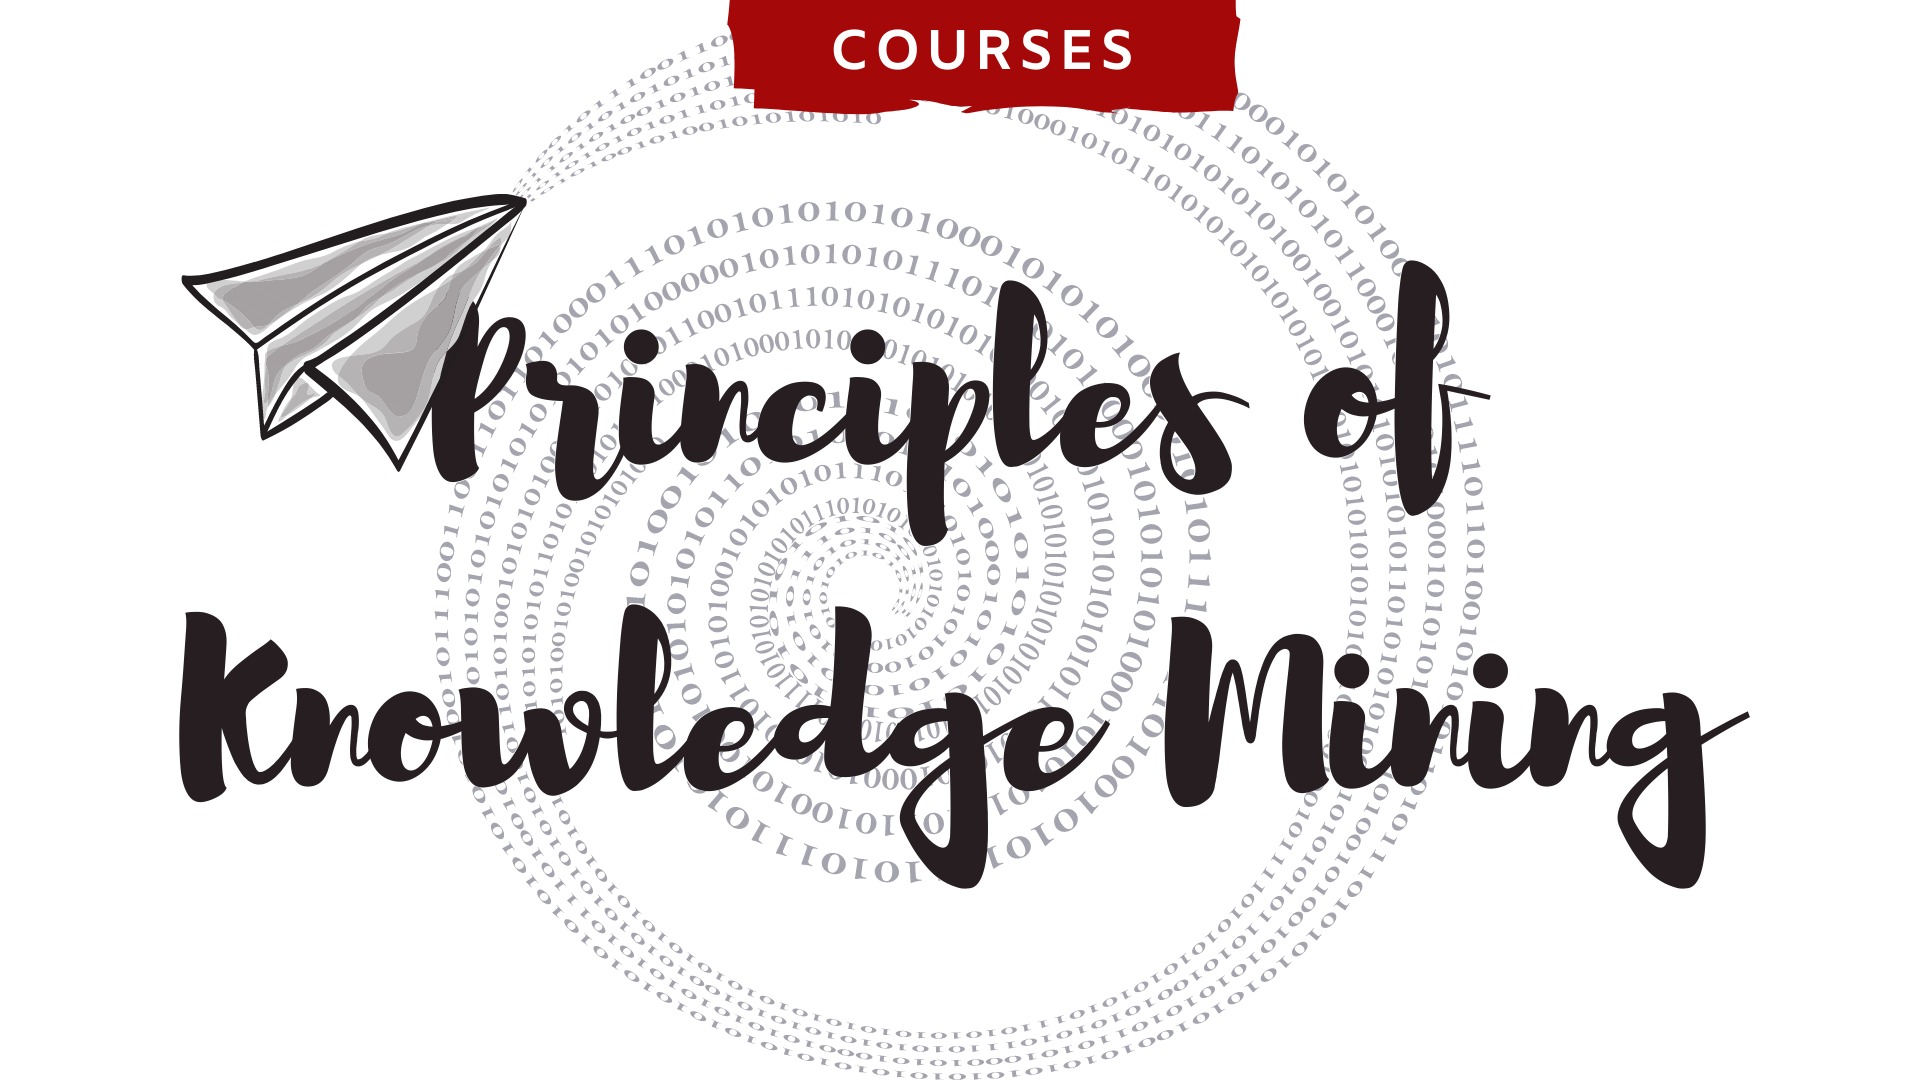 Principles of Knolwedge Mining with a paper plane spiraling into binary 1s and 0s. Courses in a papyrus scroll bookmark